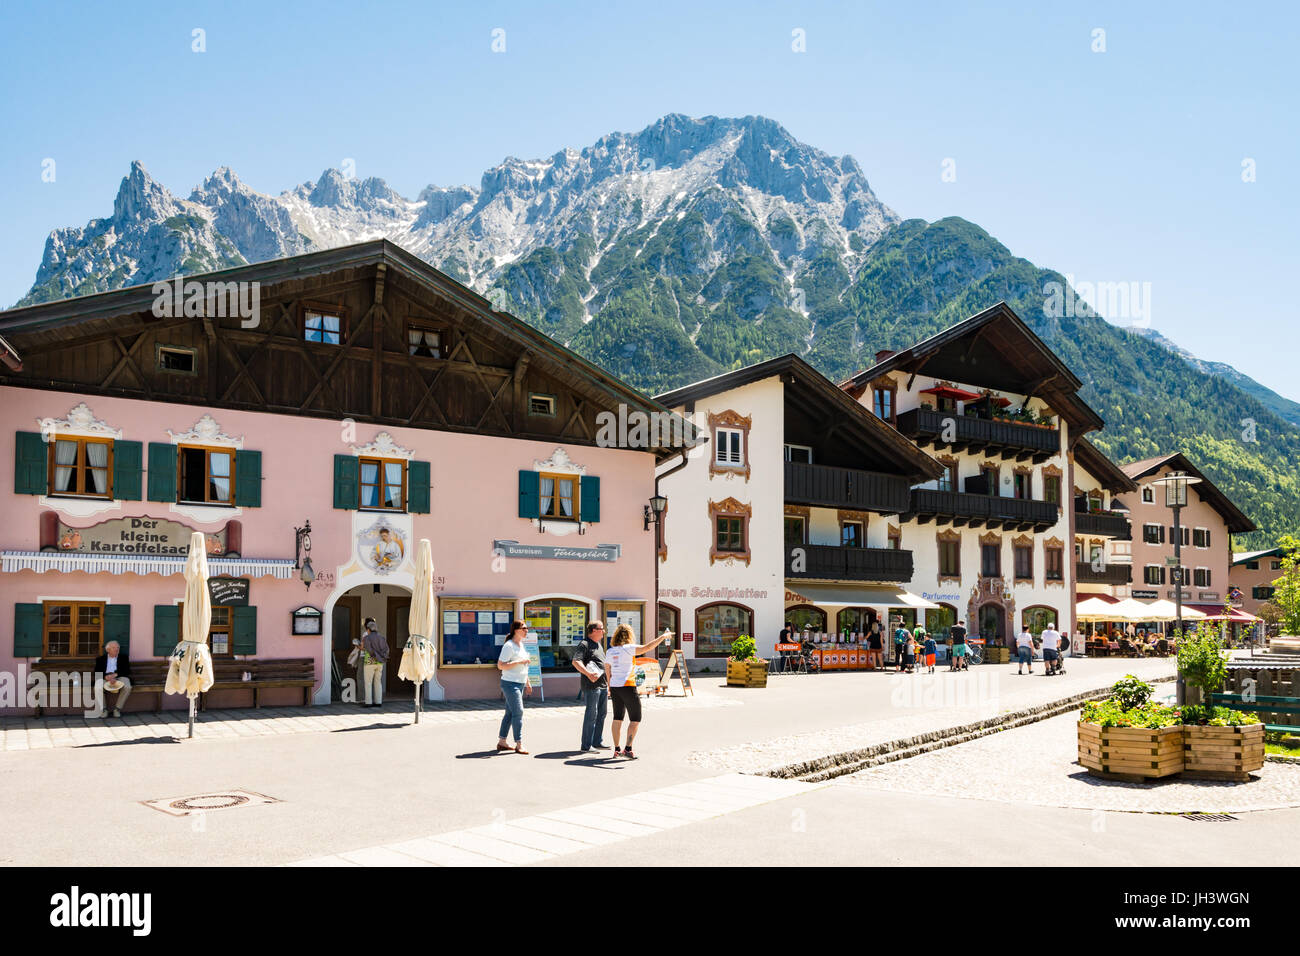 MITTENWALD, GERMANY - MAY 27: Tourists at the historic old town of Mittenwald, Germany on May 27, 2017. Mittenwald - Stock Image